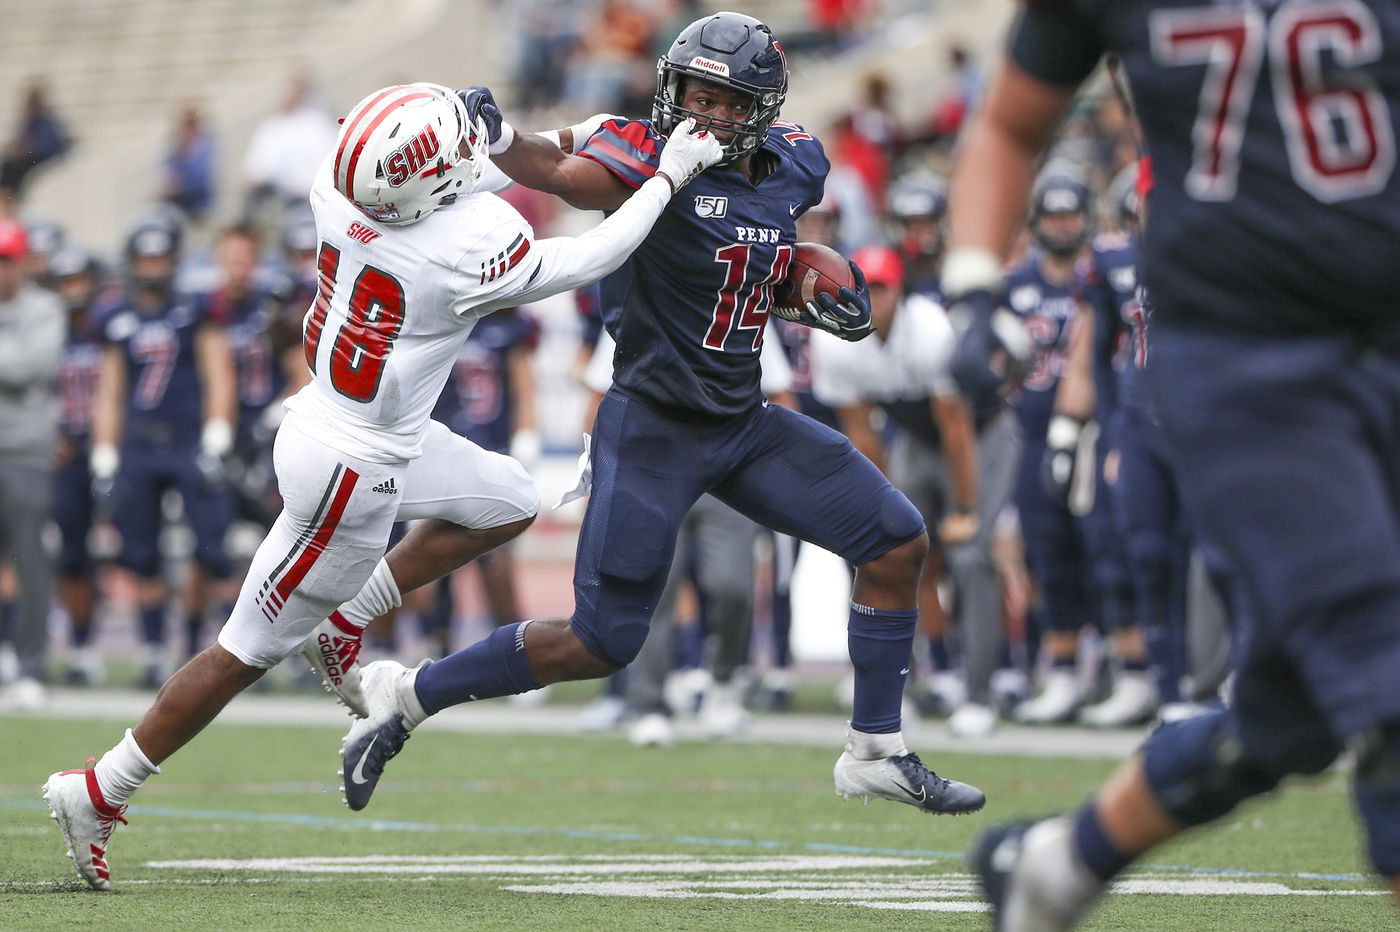 Penn's offense discovering its balance for Ivy League play